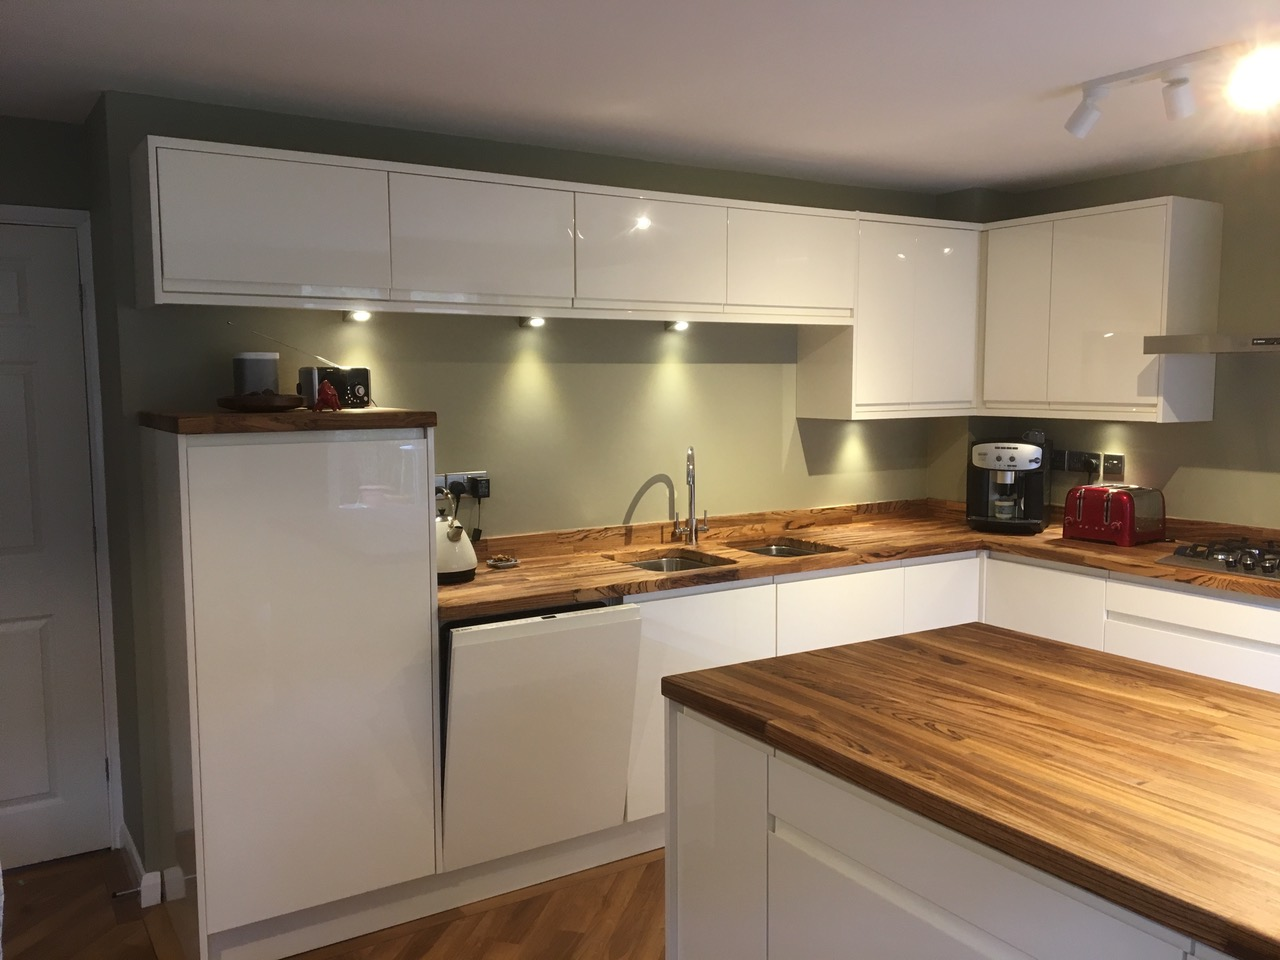 Kitchens west midlands bespoke fitted kitchen design for Fitted kitchen designs